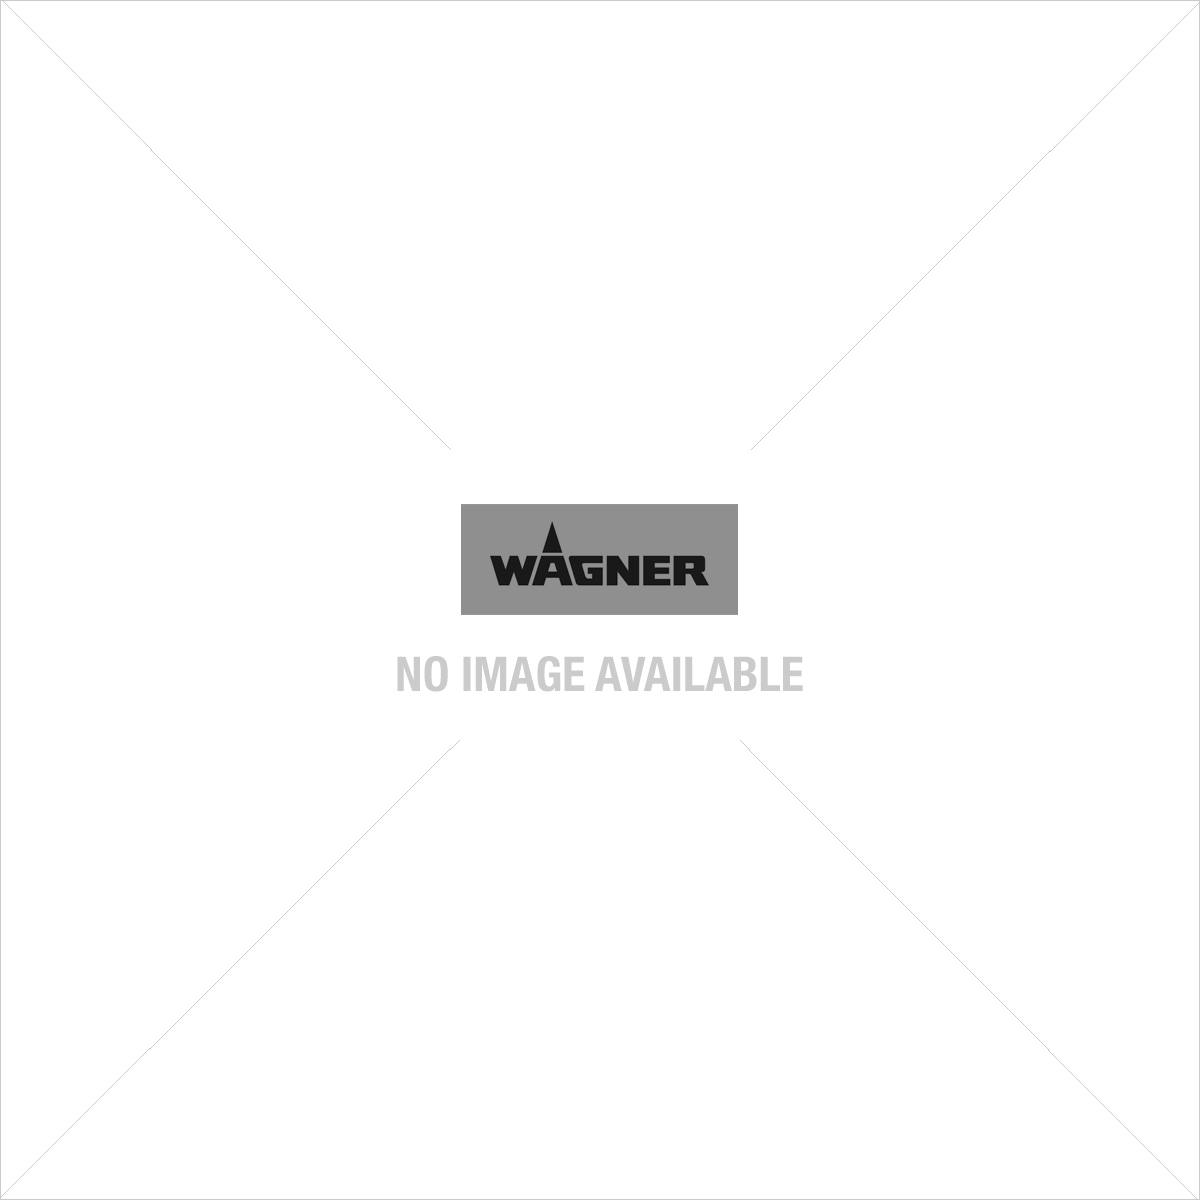 Wagner W 985 E WallPerfect pistolet a peinture, basse pression.